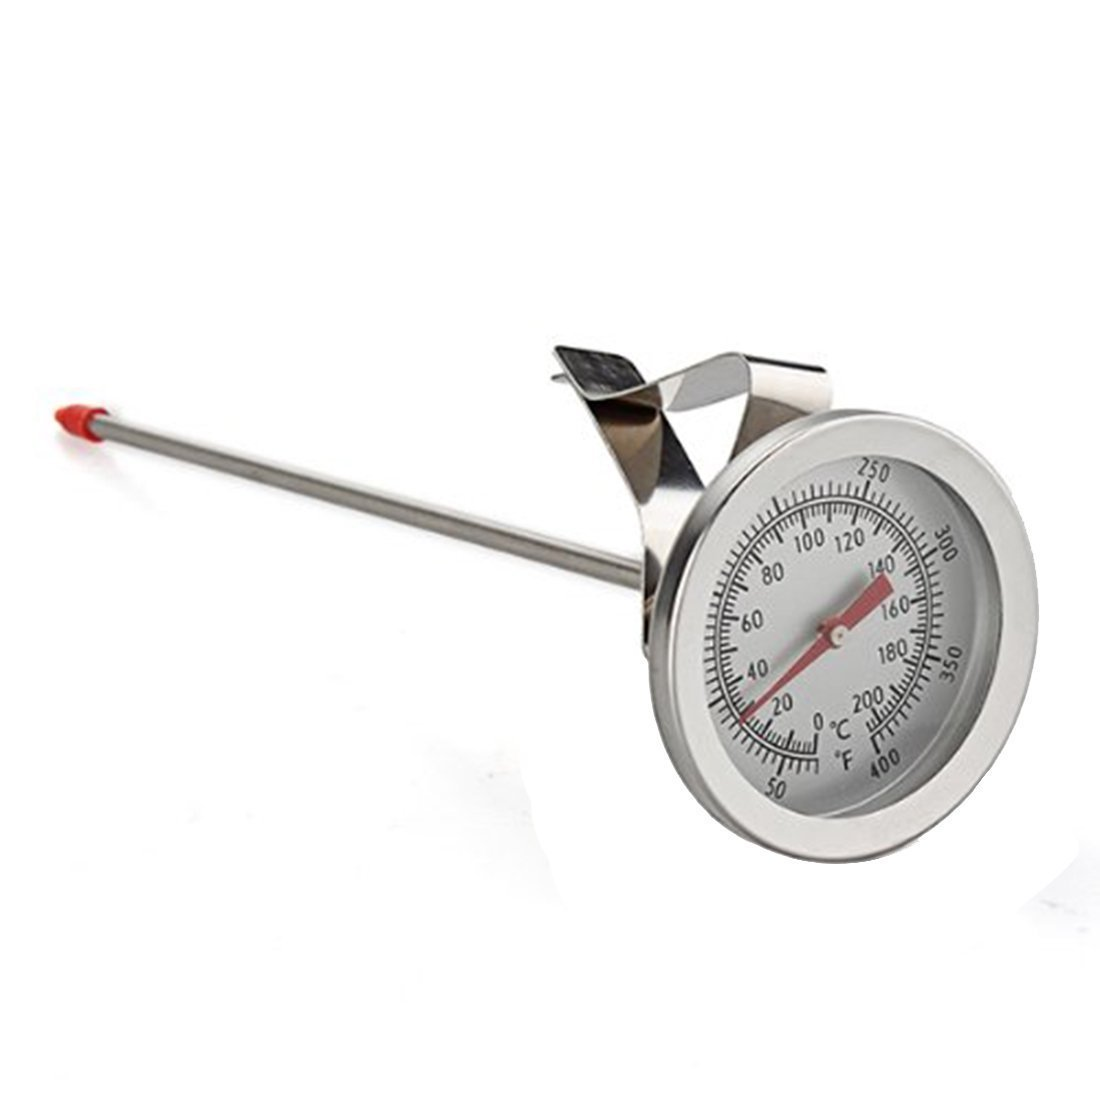 Kitchen Probe Thermometer Stainless Steel Food Cooking Oven Barbecue Gauge ASTrade TRTA11A